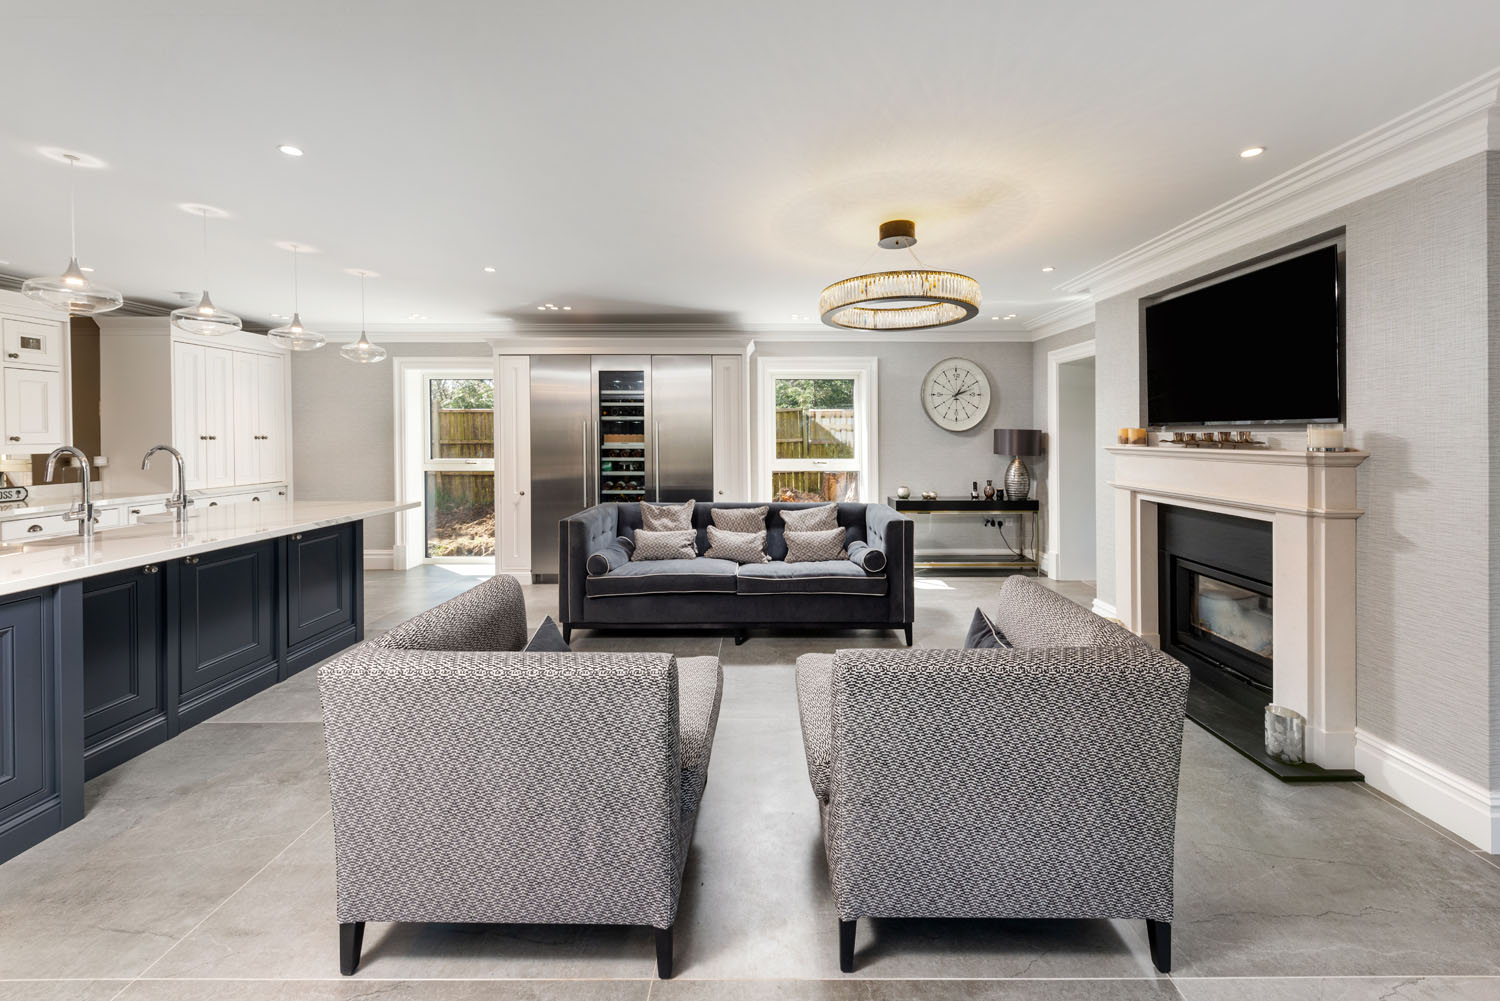 Image of 05 in Dekton Flooring and Kitchen Worksurfaces Add Timeless Elegance to This Classic Family Home - Cosentino